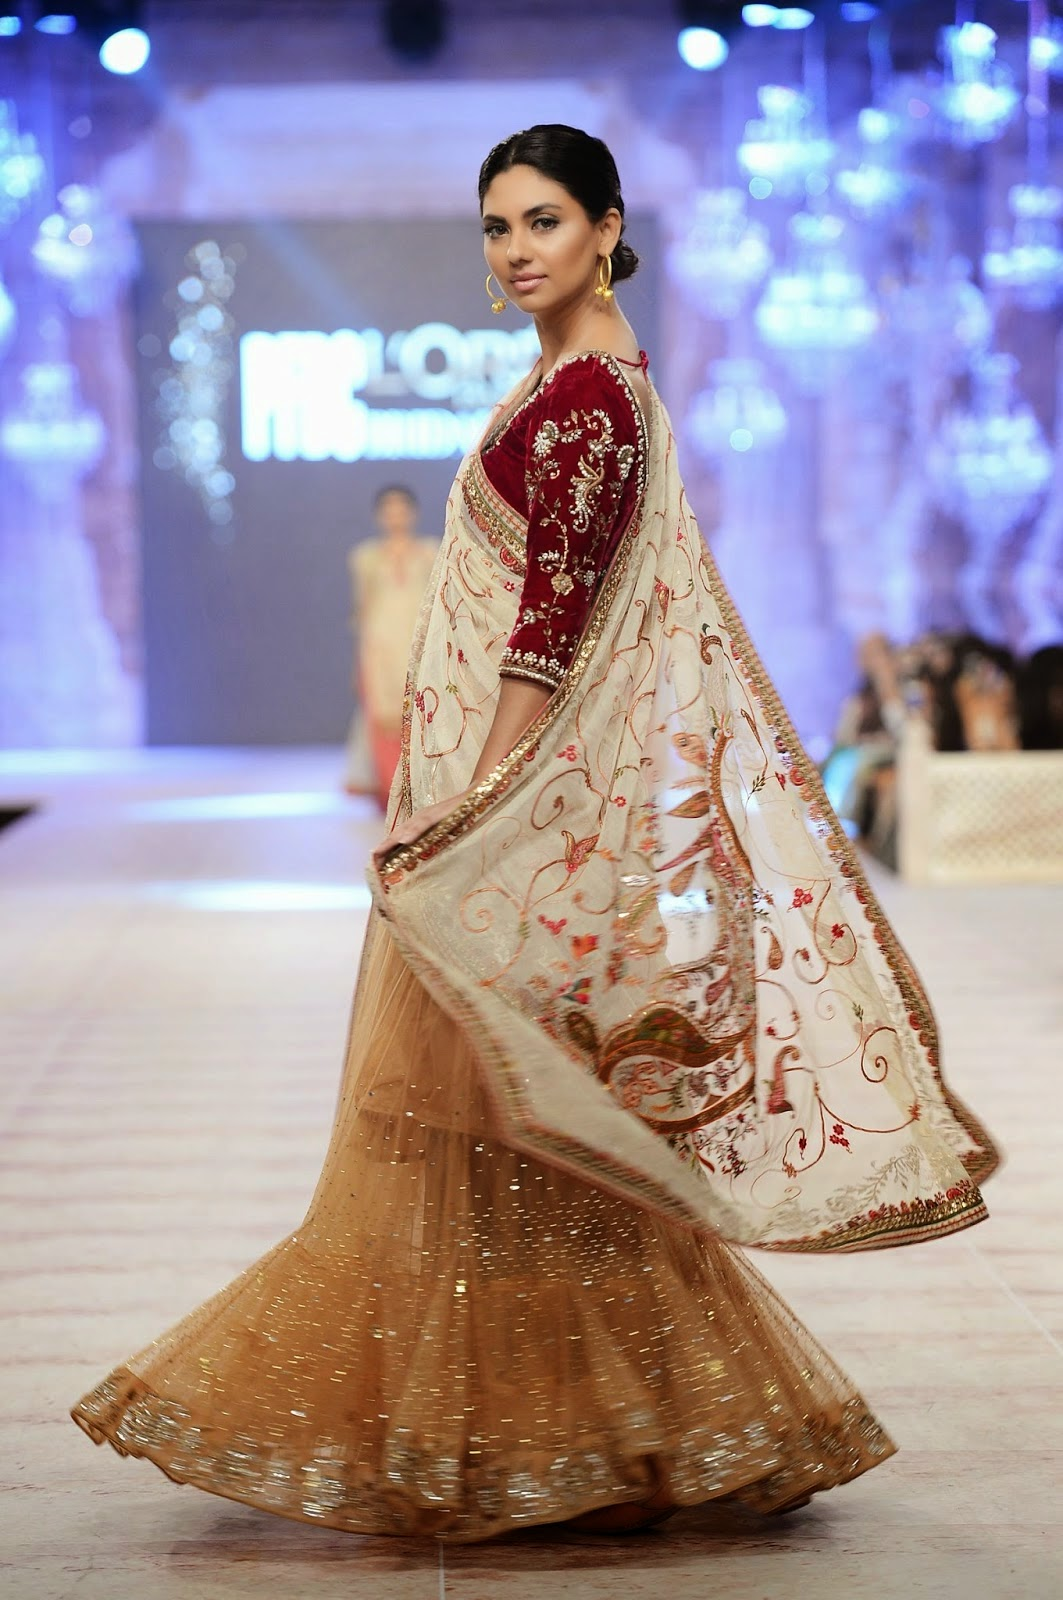 Maroon velvet choli with a gold lengha